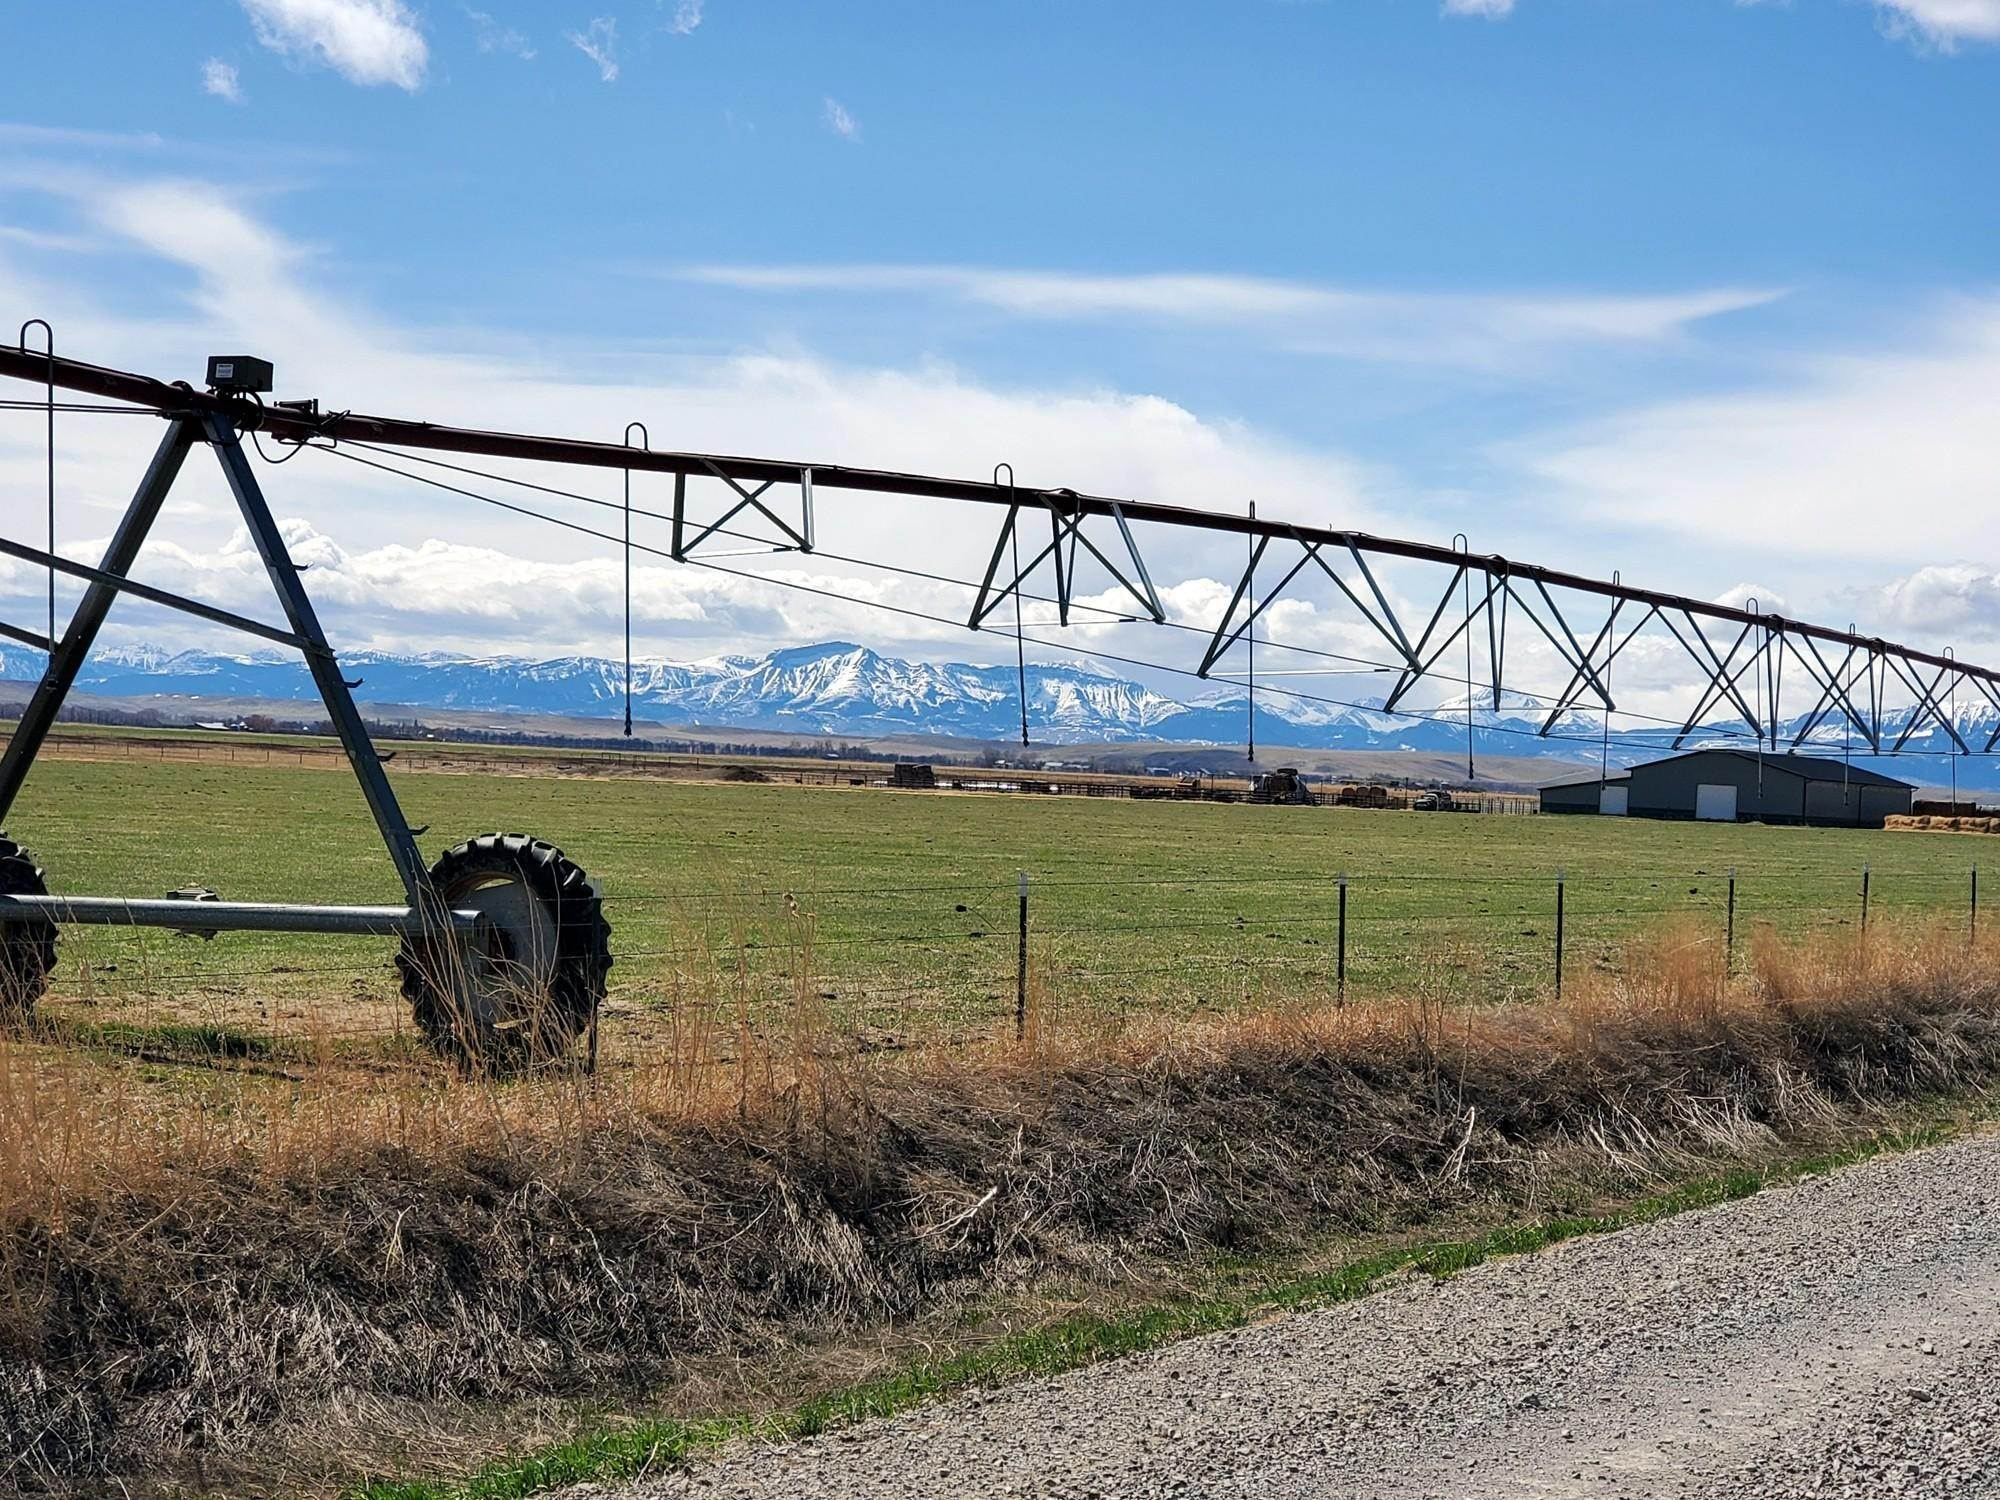 Farm / Agriculture for Sale at 2731 10th Lane Choteau, Montana 59422 United States